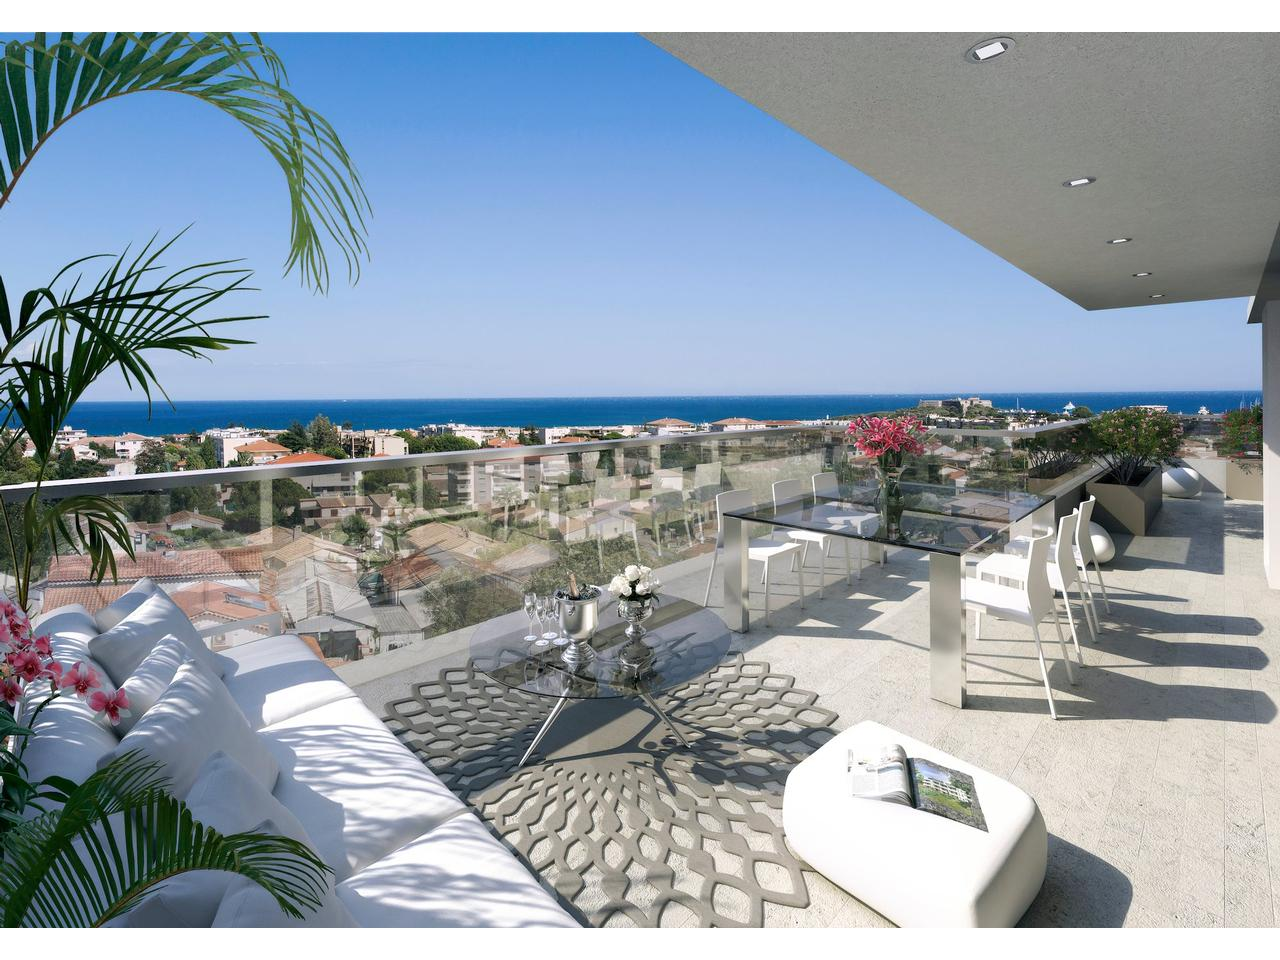 Vente appartement antibes immobilier nice vue mer - Appartement avec vue ofist ...